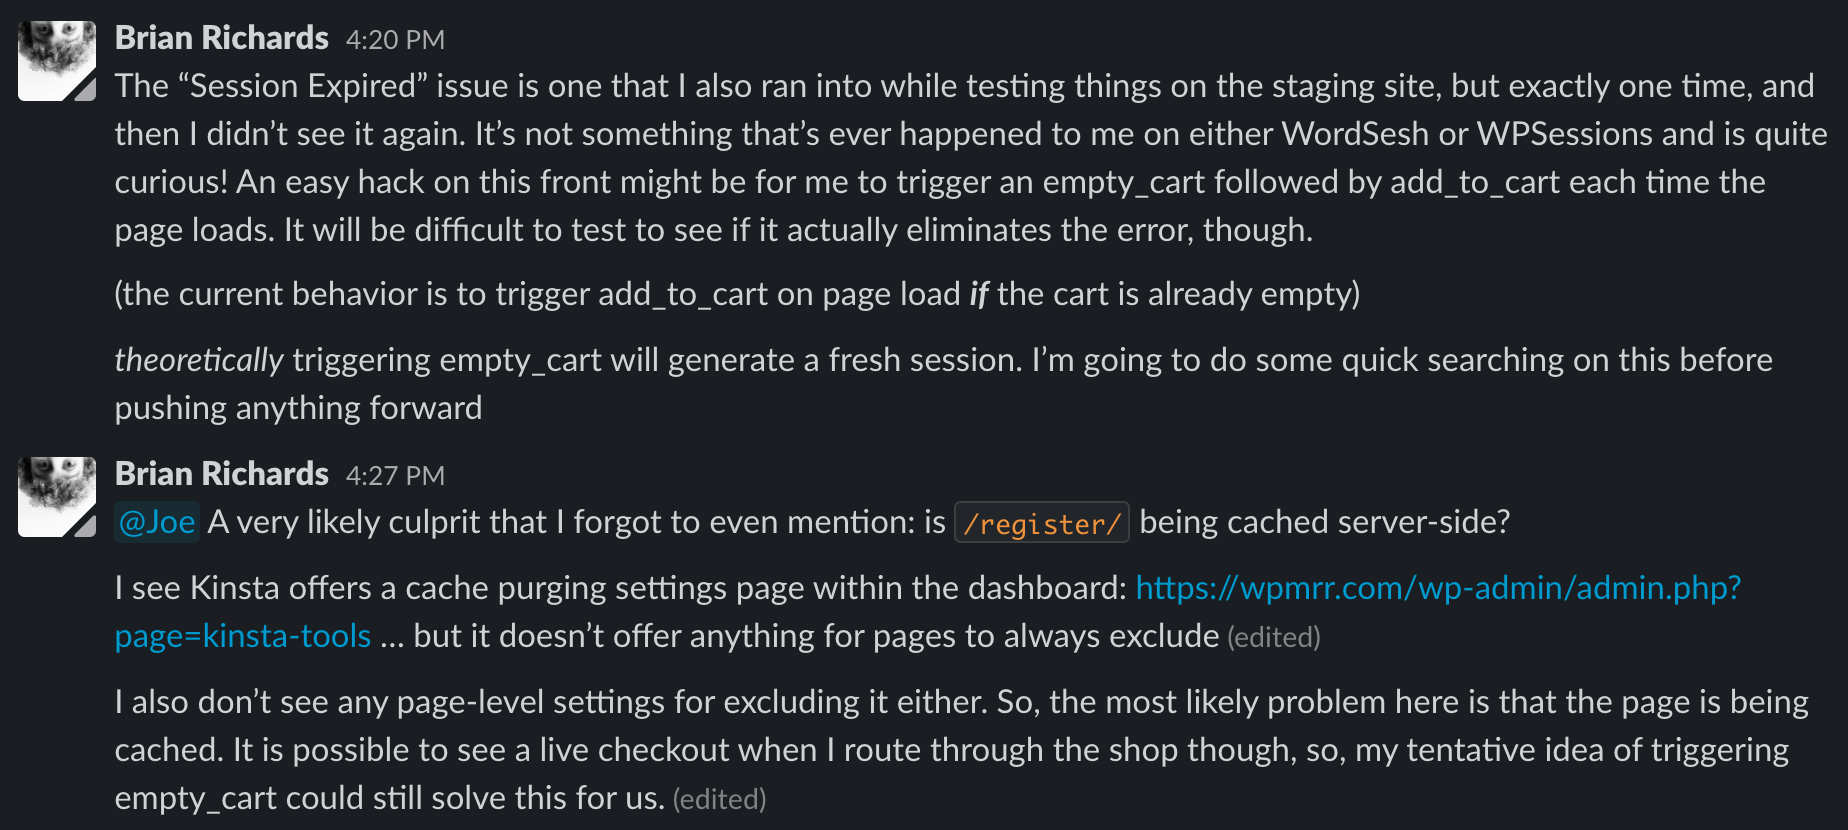 """A screenshot of a Slack message from Brian where he explains what is happening with the """"session expired"""" issue. He explains what the problem is, that he is going to do some research, and then 7 minutes later, explains that it's a caching issue, and says """"my tentative idea of triggering empty_cart could still solve this for us."""""""